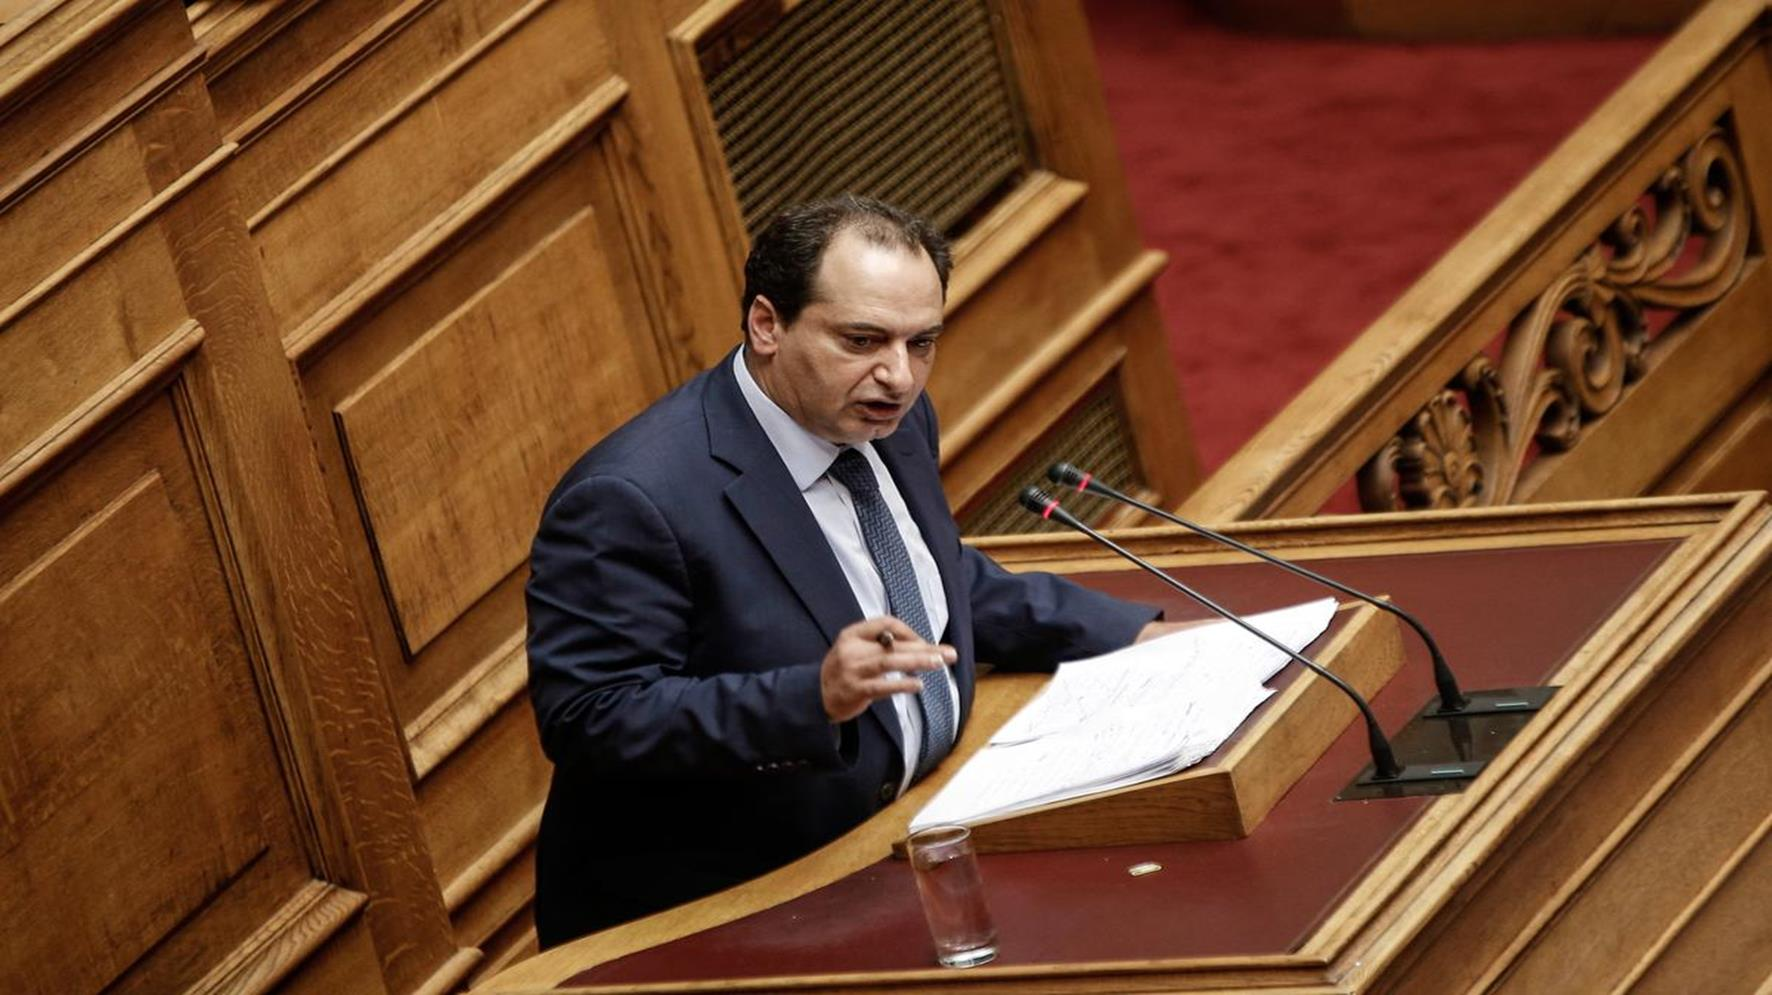 Discussion And Voting Regarding The Broadcasting Stations Licensing Bill, At The Plenary Hall Of The Greek Parliament, On Oct. 24, 2015. / Συζήτηση και ψήφιση στην Ολομέλεια του νομοσχεδίου για τις τηλεοπτικές άδειες, στις 24 Οκτωβρίου, 2015.